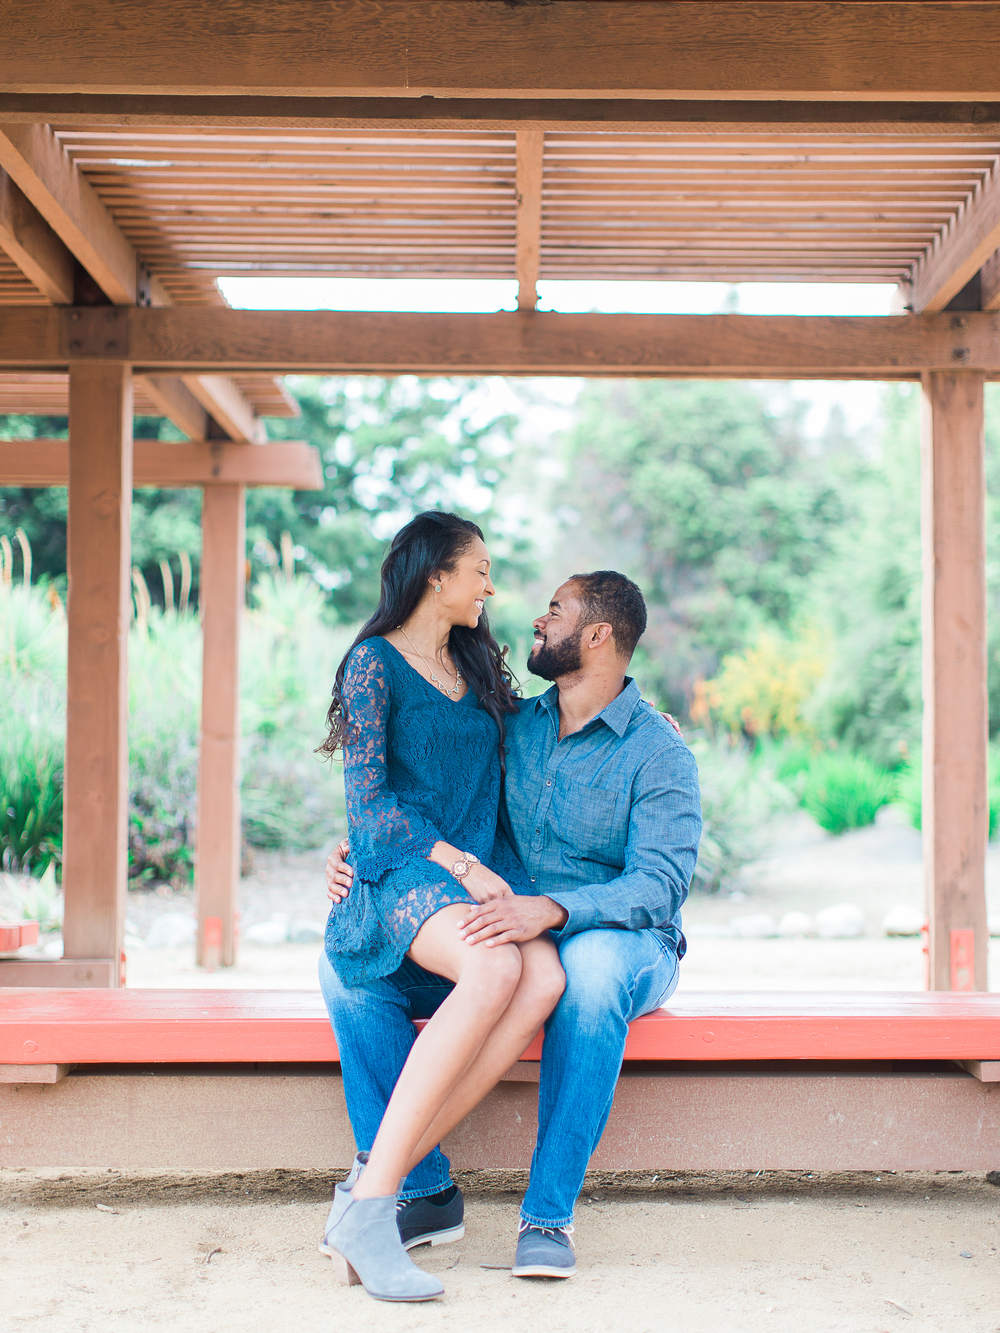 Christa and Greg Engagement_Brandon J Ferlin Photography-11.jpg